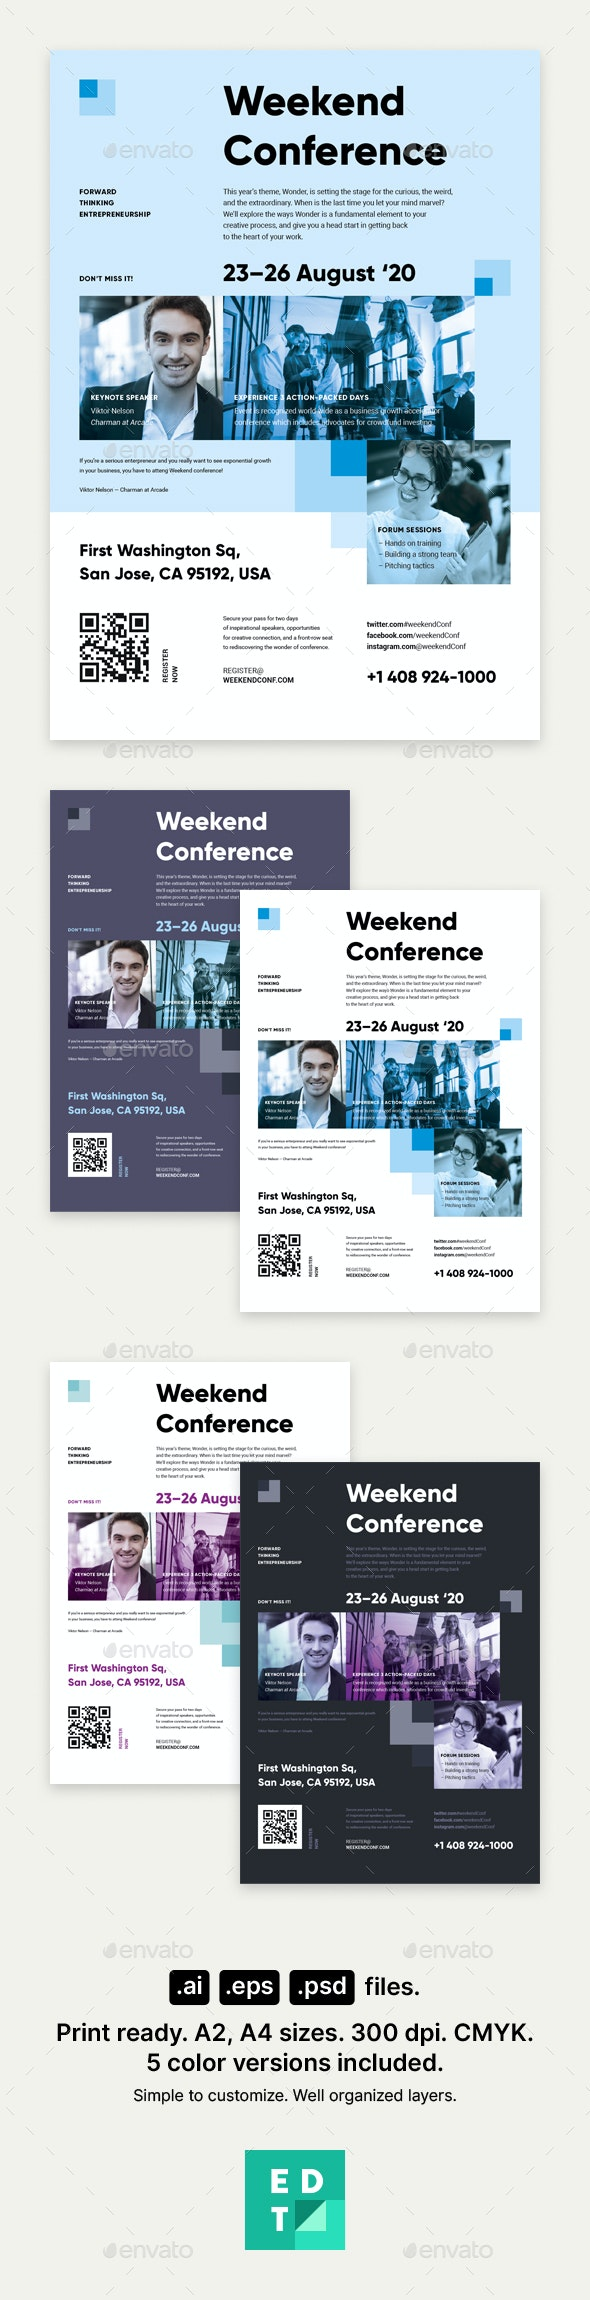 Weekend Conference Poster Template - Corporate Flyers